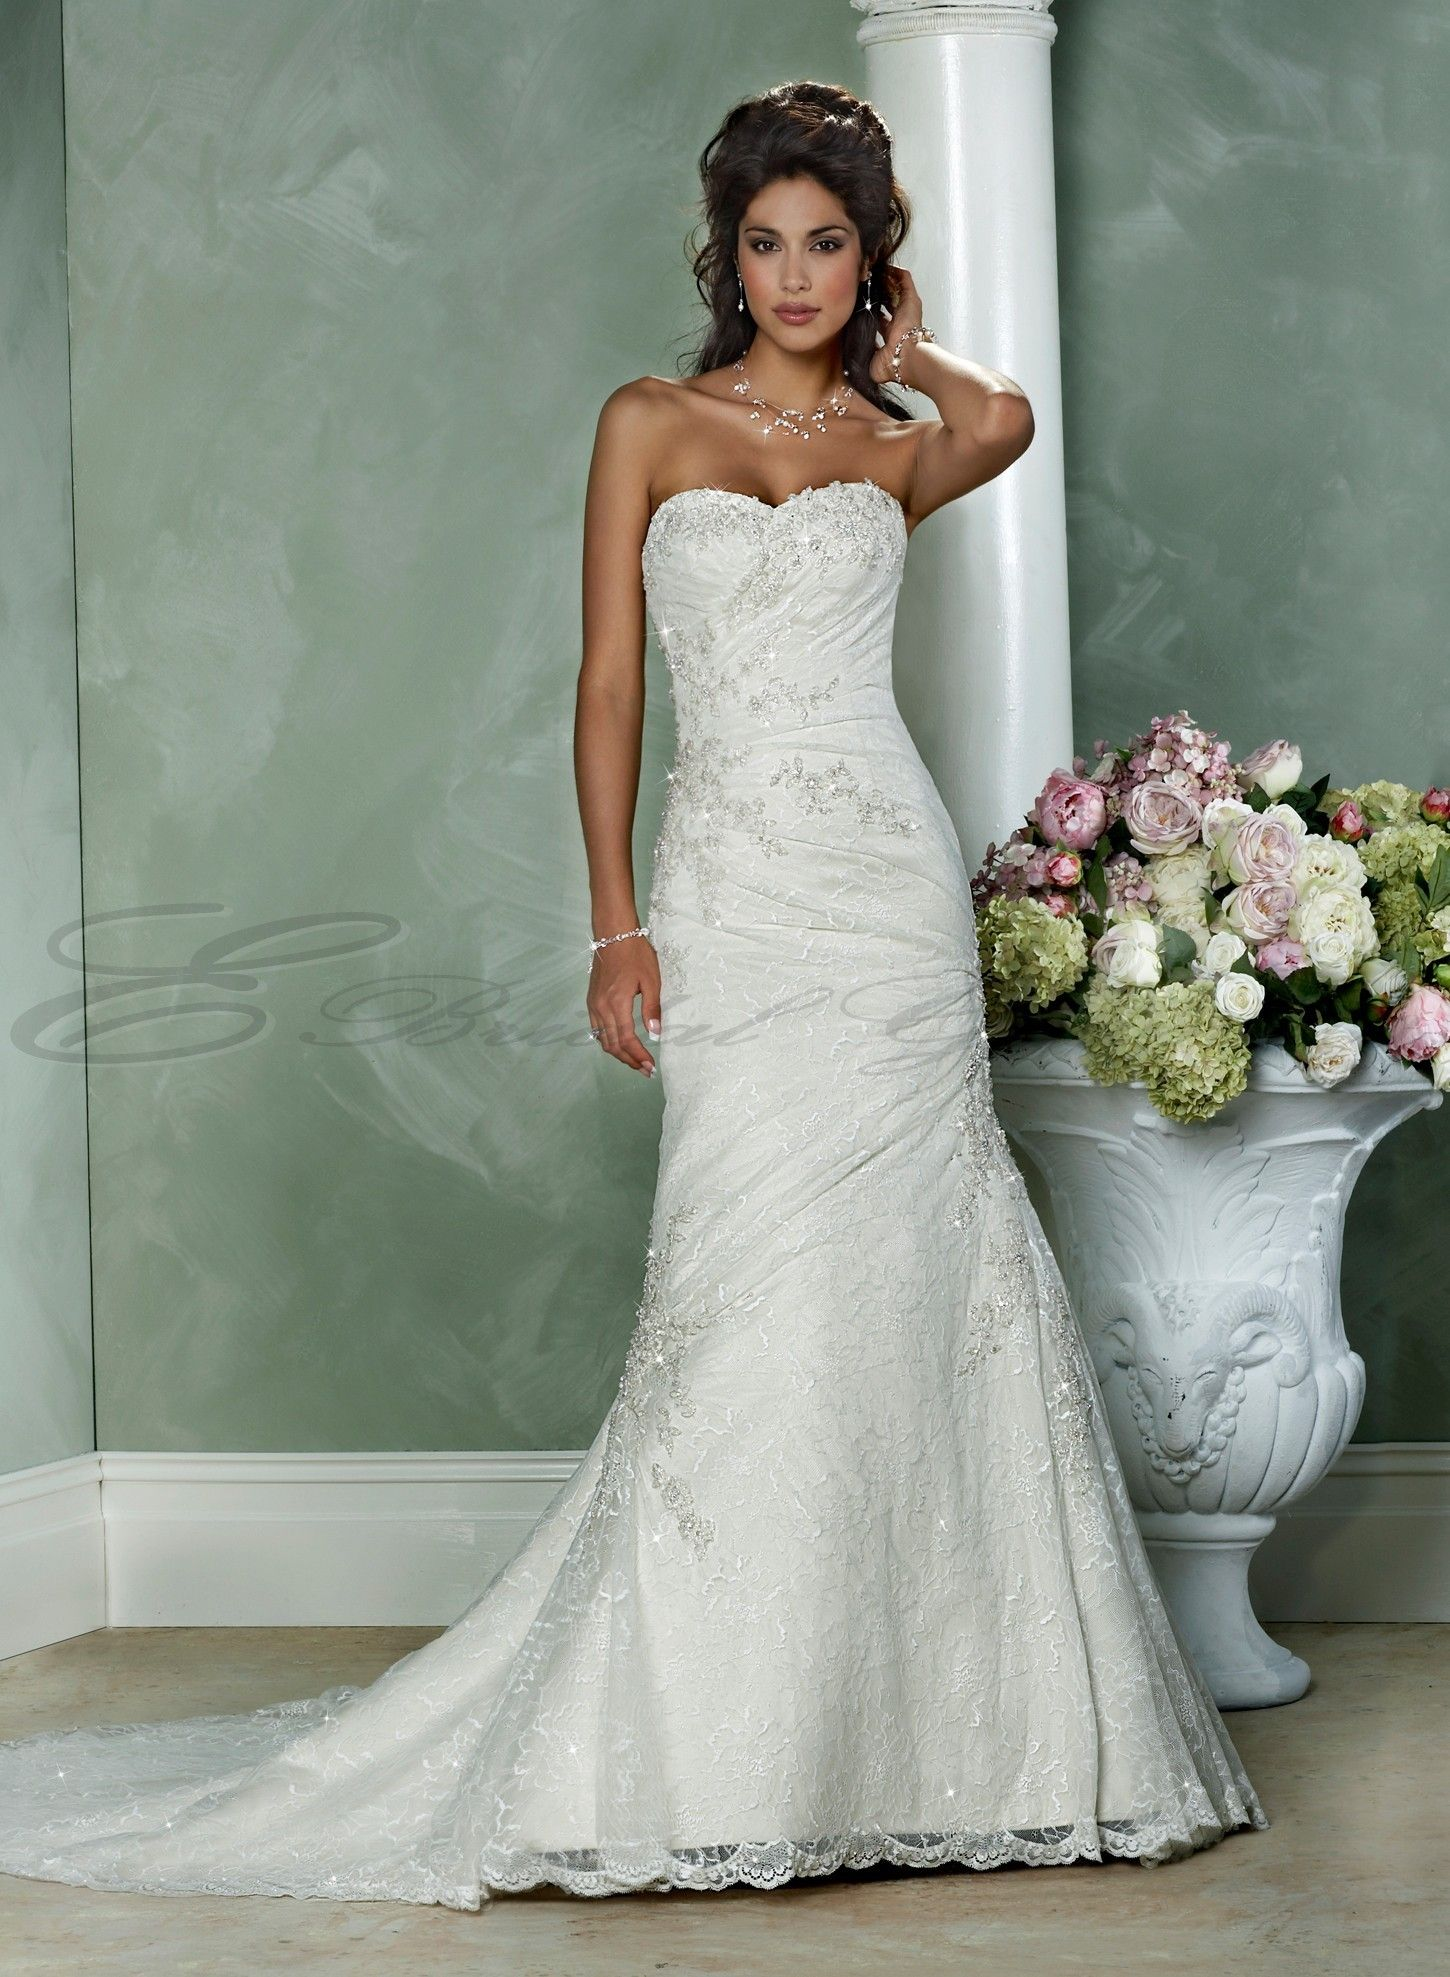 Sweetheart Wedding Dress Glamorous Sweetheart Neckline Wedding ...